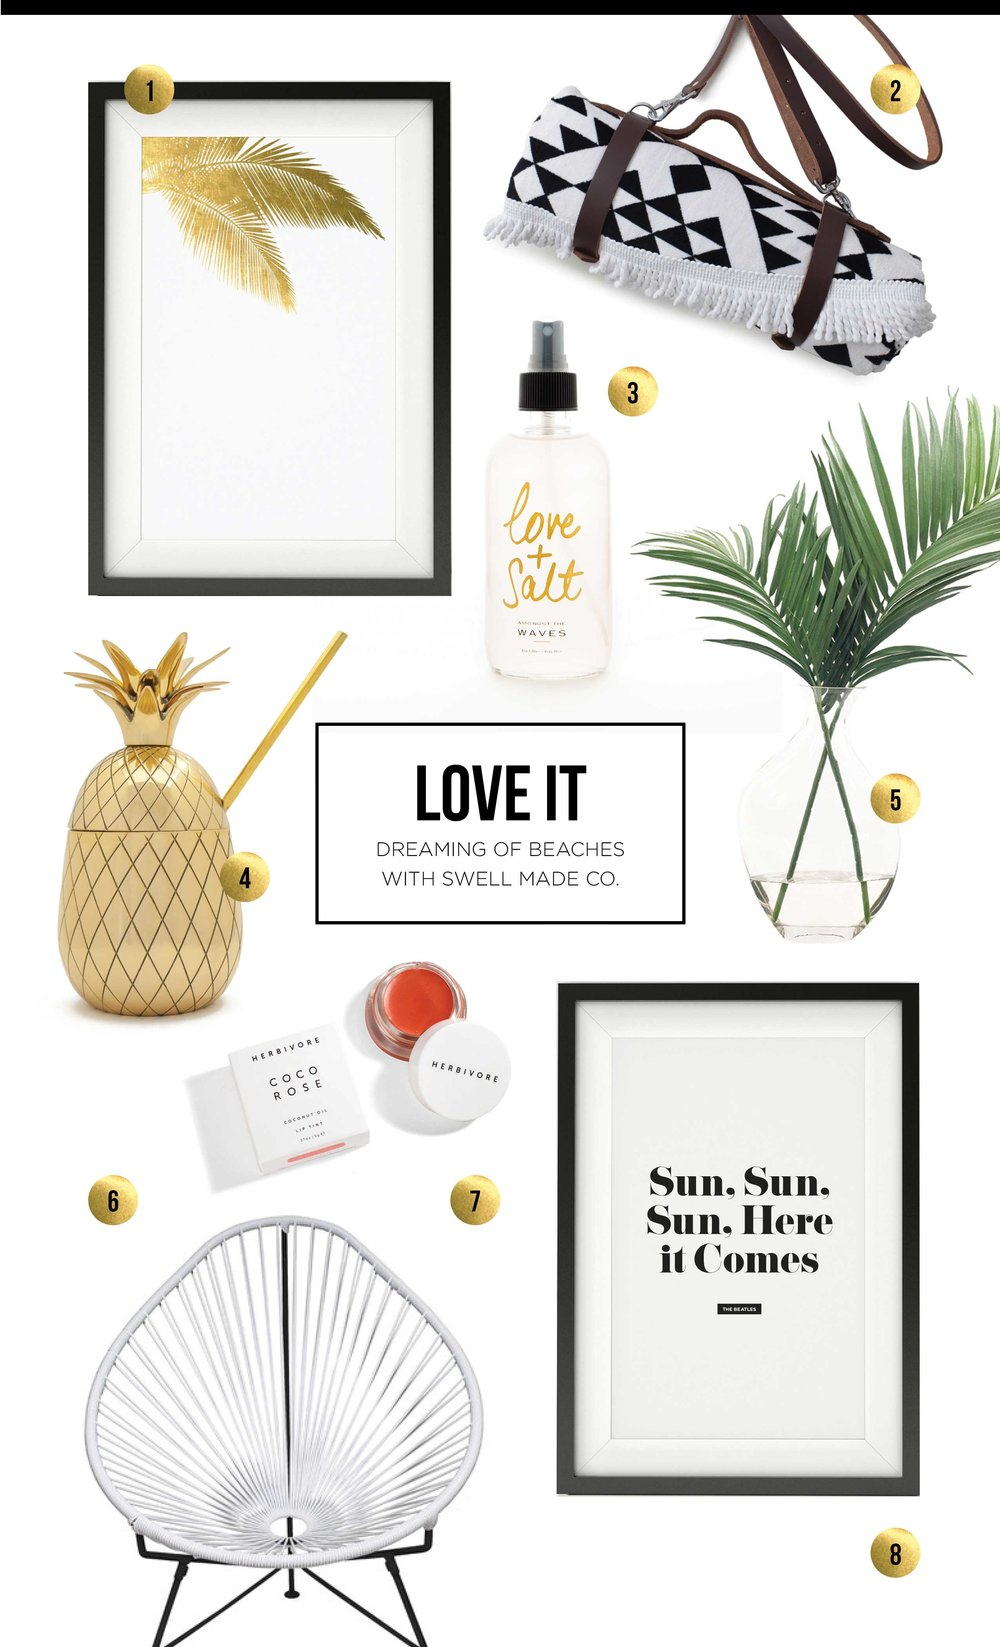 LOVE IT - Dreaming of beaches and the tropics with Swell Made Co.